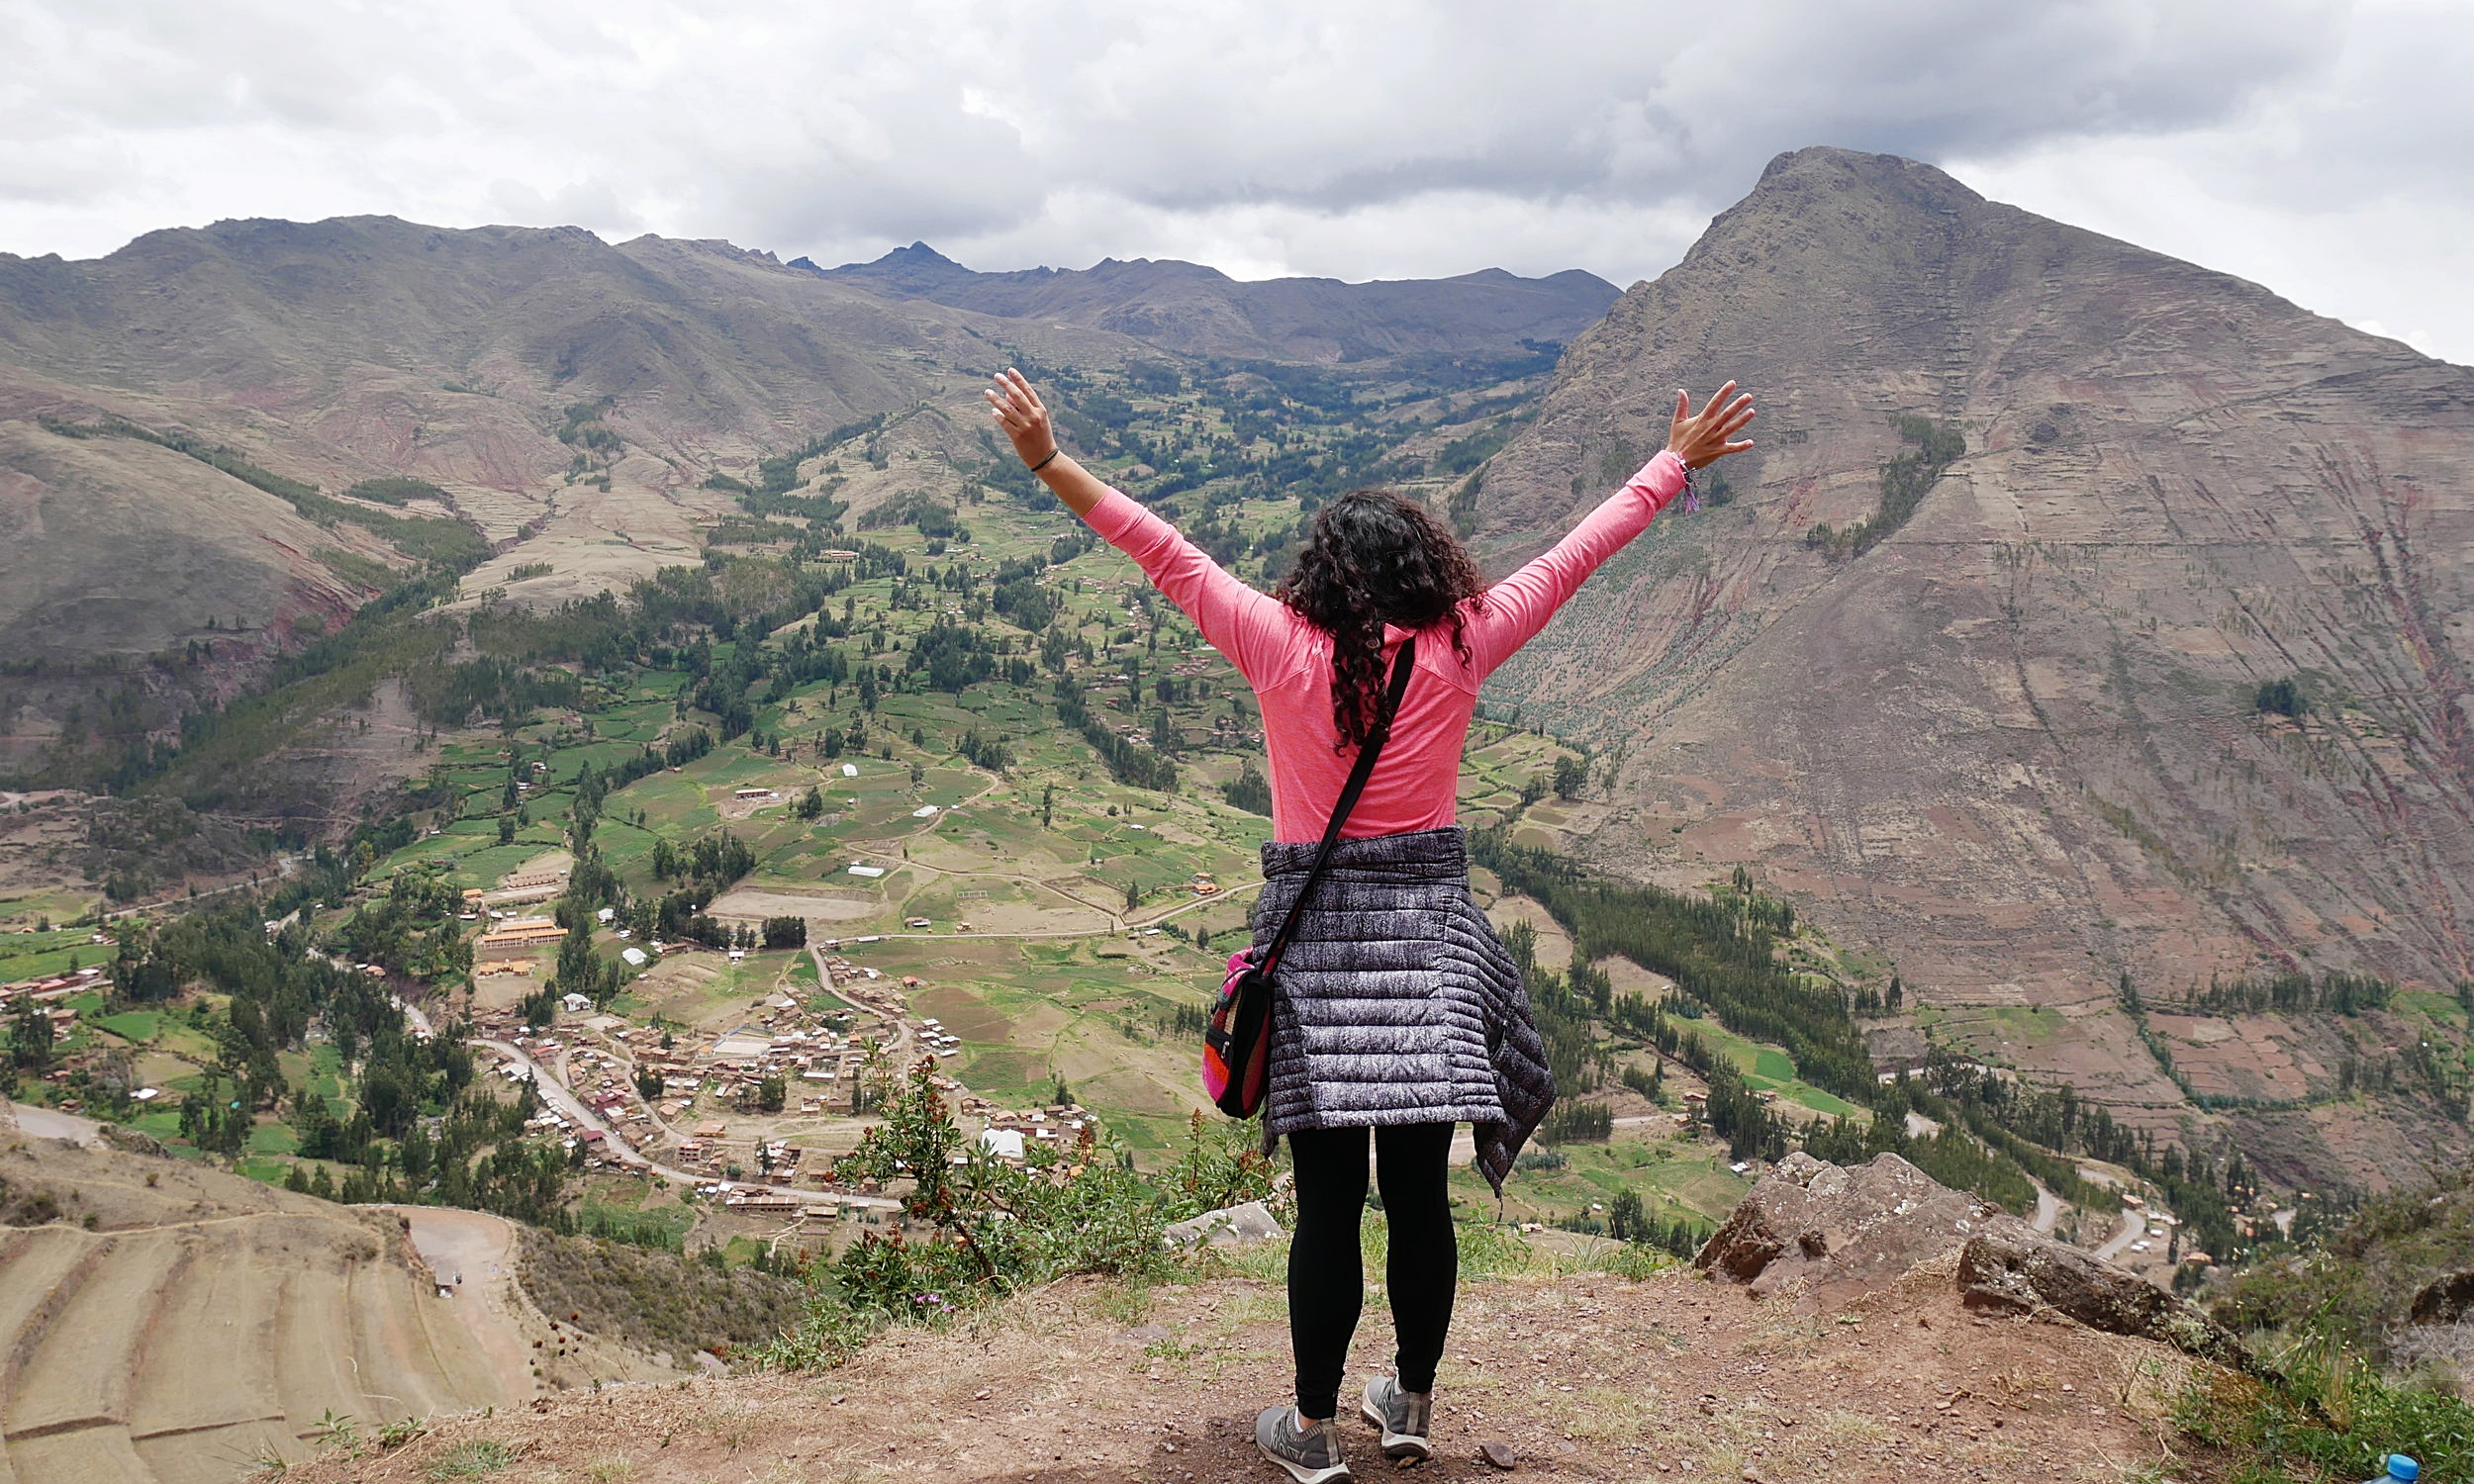 Enjoying the views in the Sacred Valley